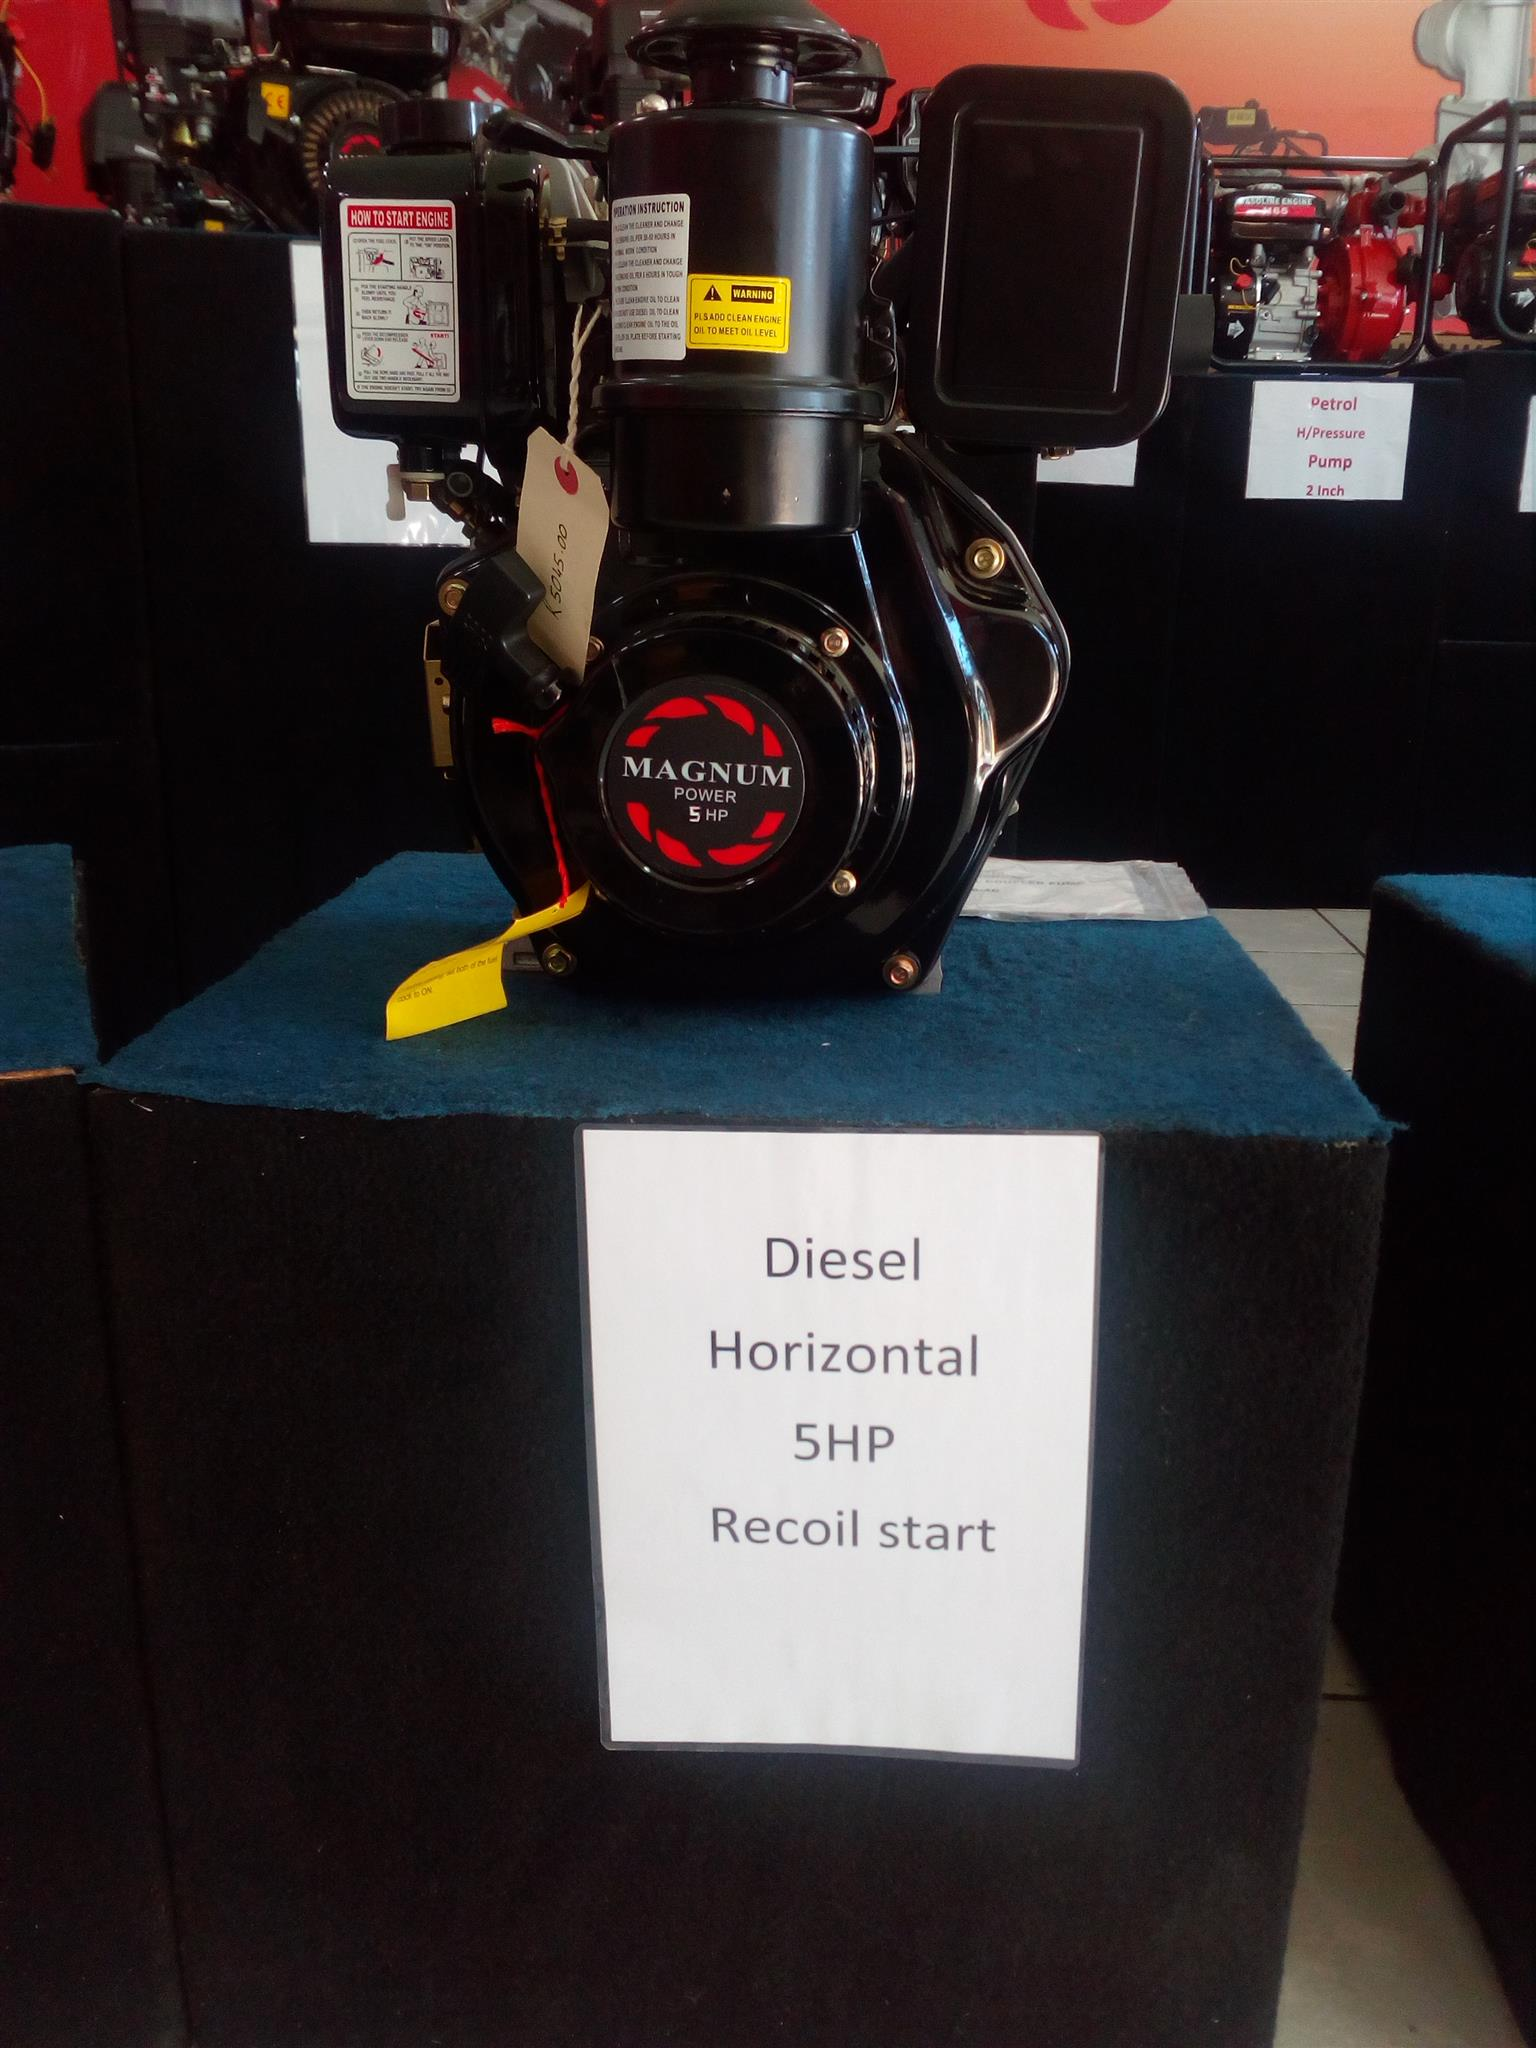 Magnum 173F/5 HP Diesel Engine with Recoil Start. Horizontal Shaft, Price Inclusive of Vat